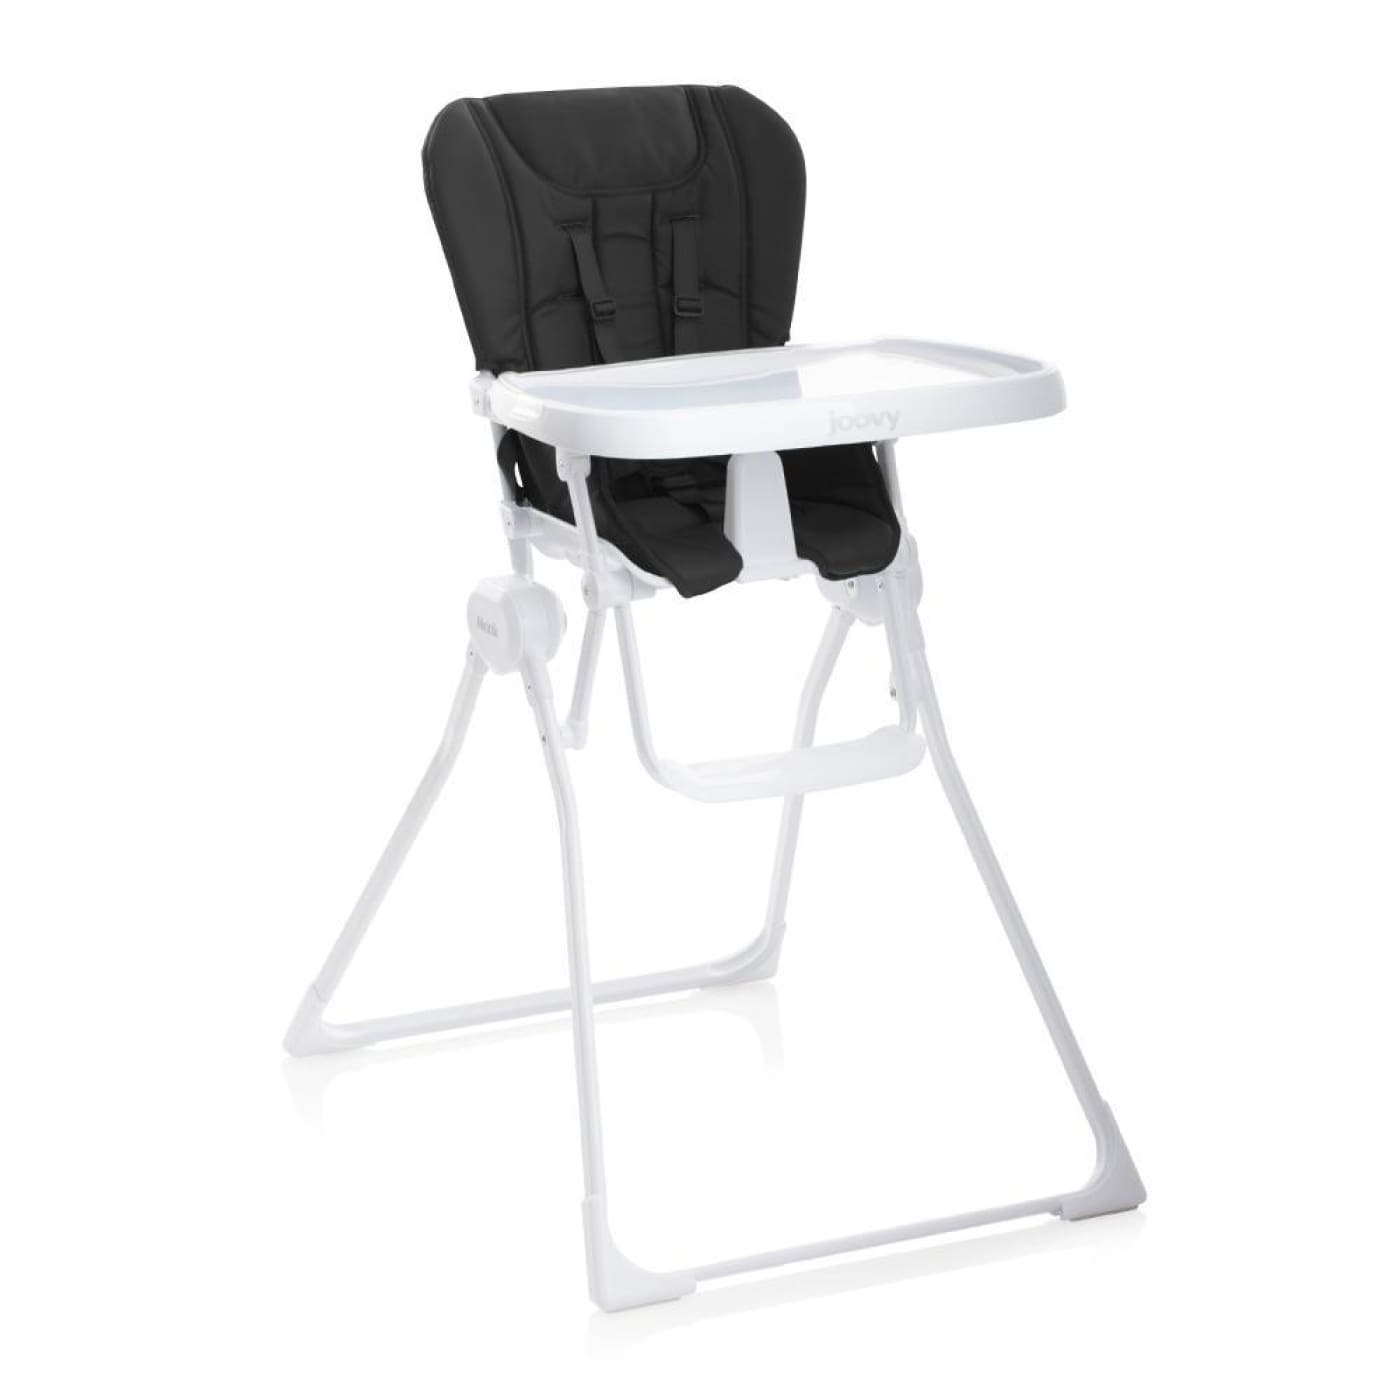 Joovy Nook Highchair - Black - Black - NURSING & FEEDING - HIGH CHAIRS/BOOSTER SEATS